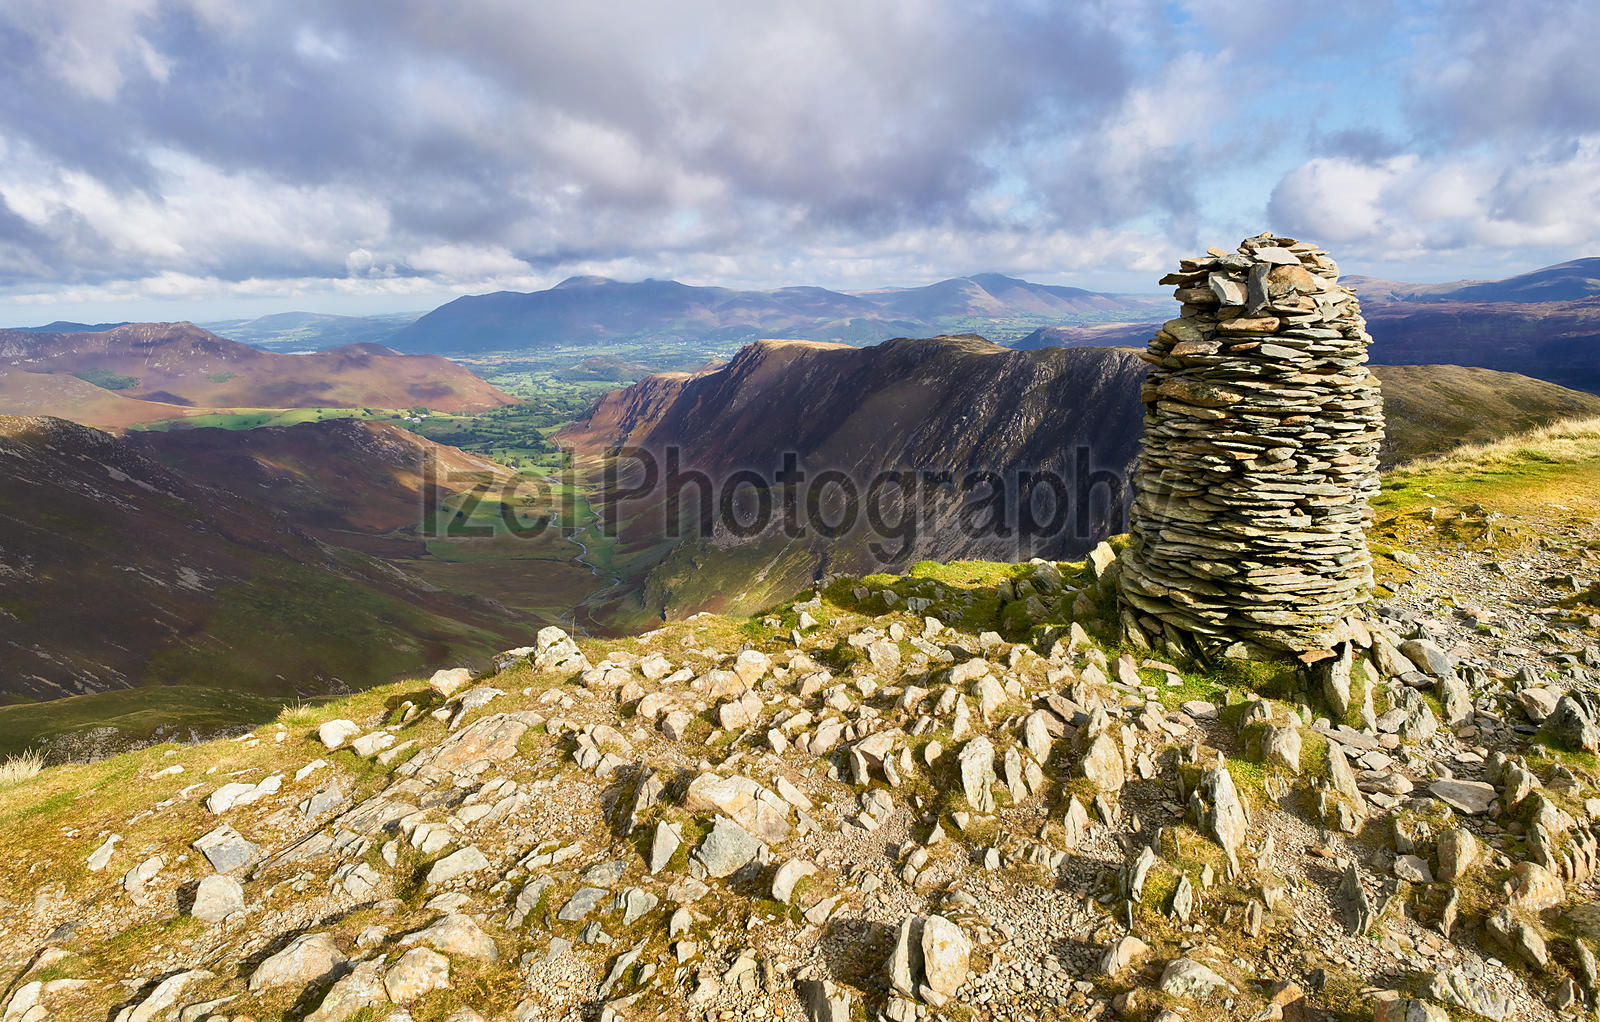 Views of Newlands Beck, High Spy, Narrow Moor and Maiden Moor in the Derwent Fells from the summit Cairn of Dale Head, Lake District, England, UK.